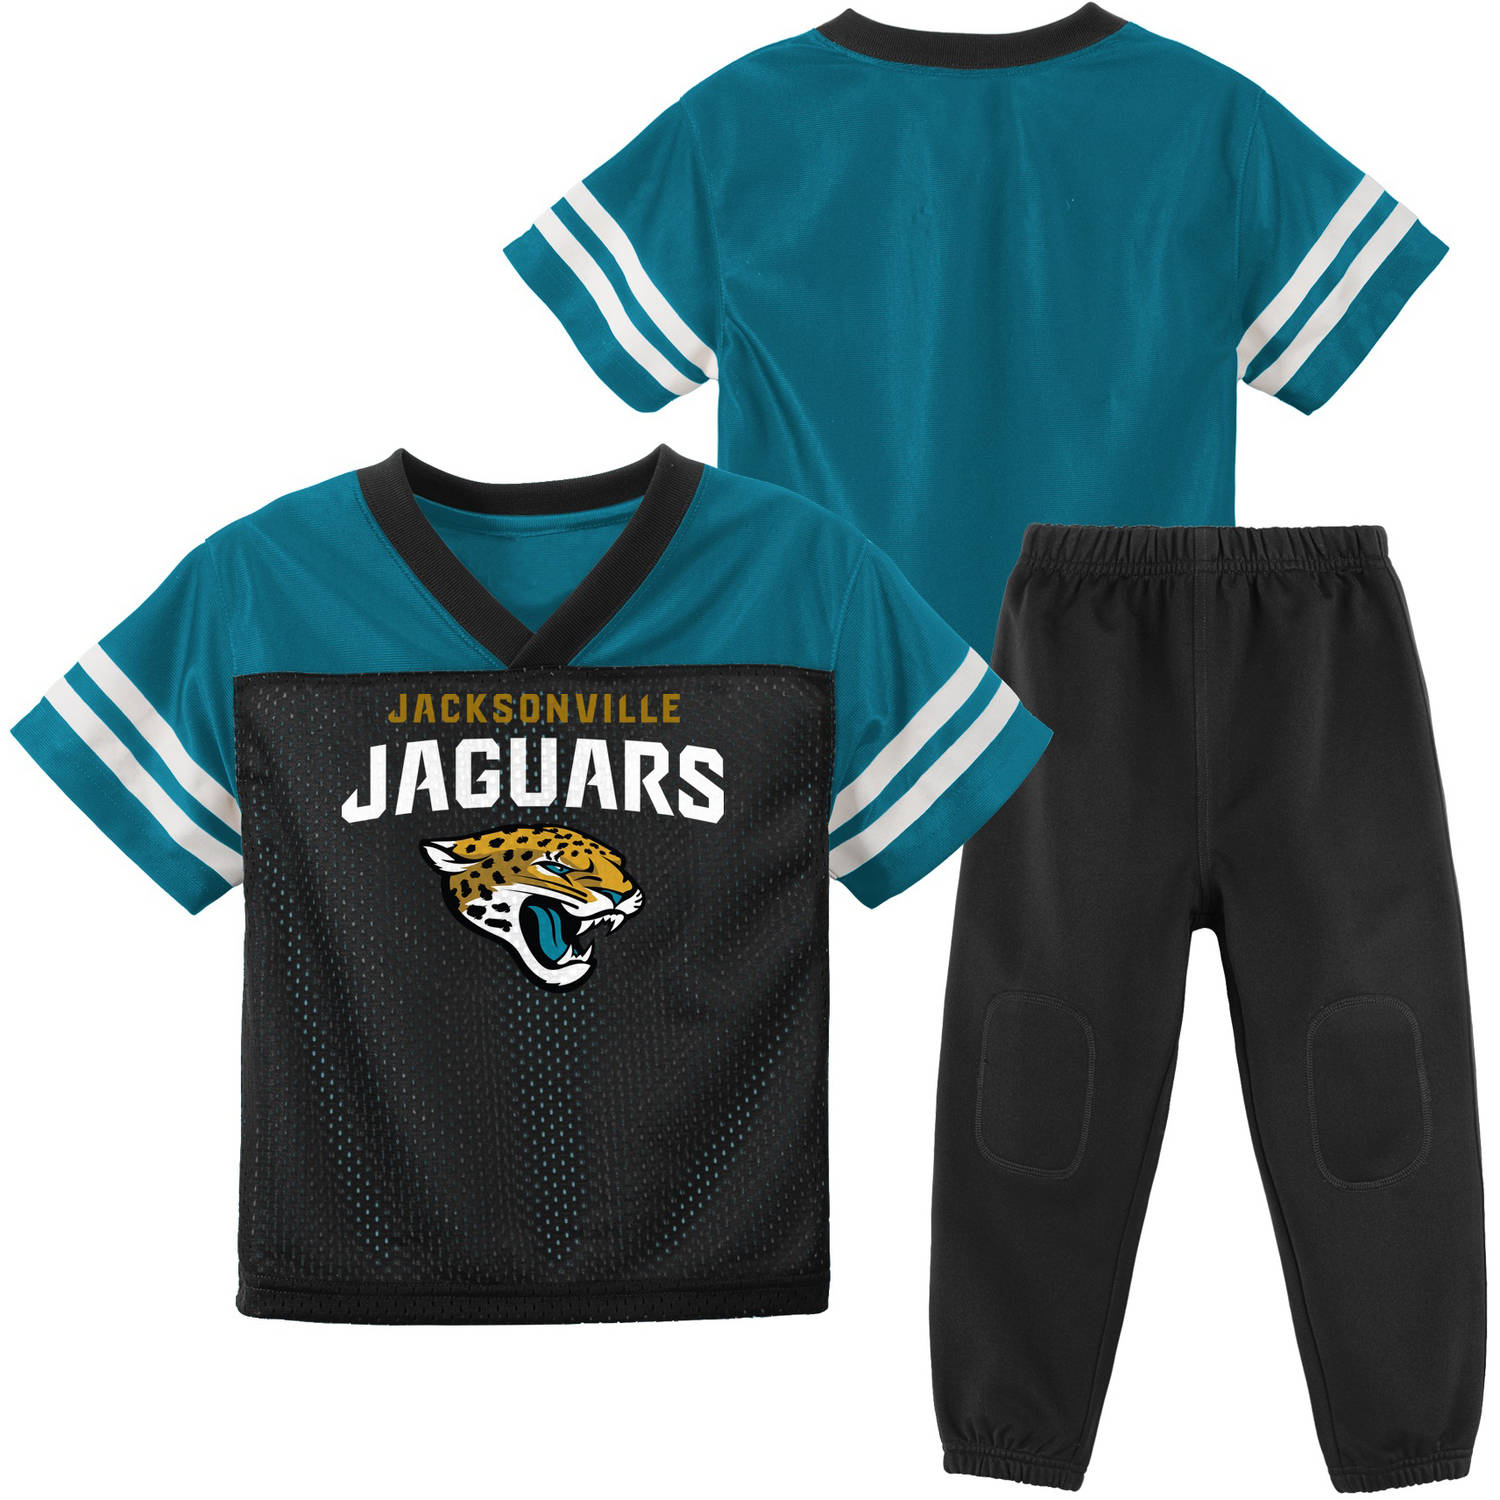 NFL Jacksonville Jaguars Toddler Short Sleeve Top and Pant Set